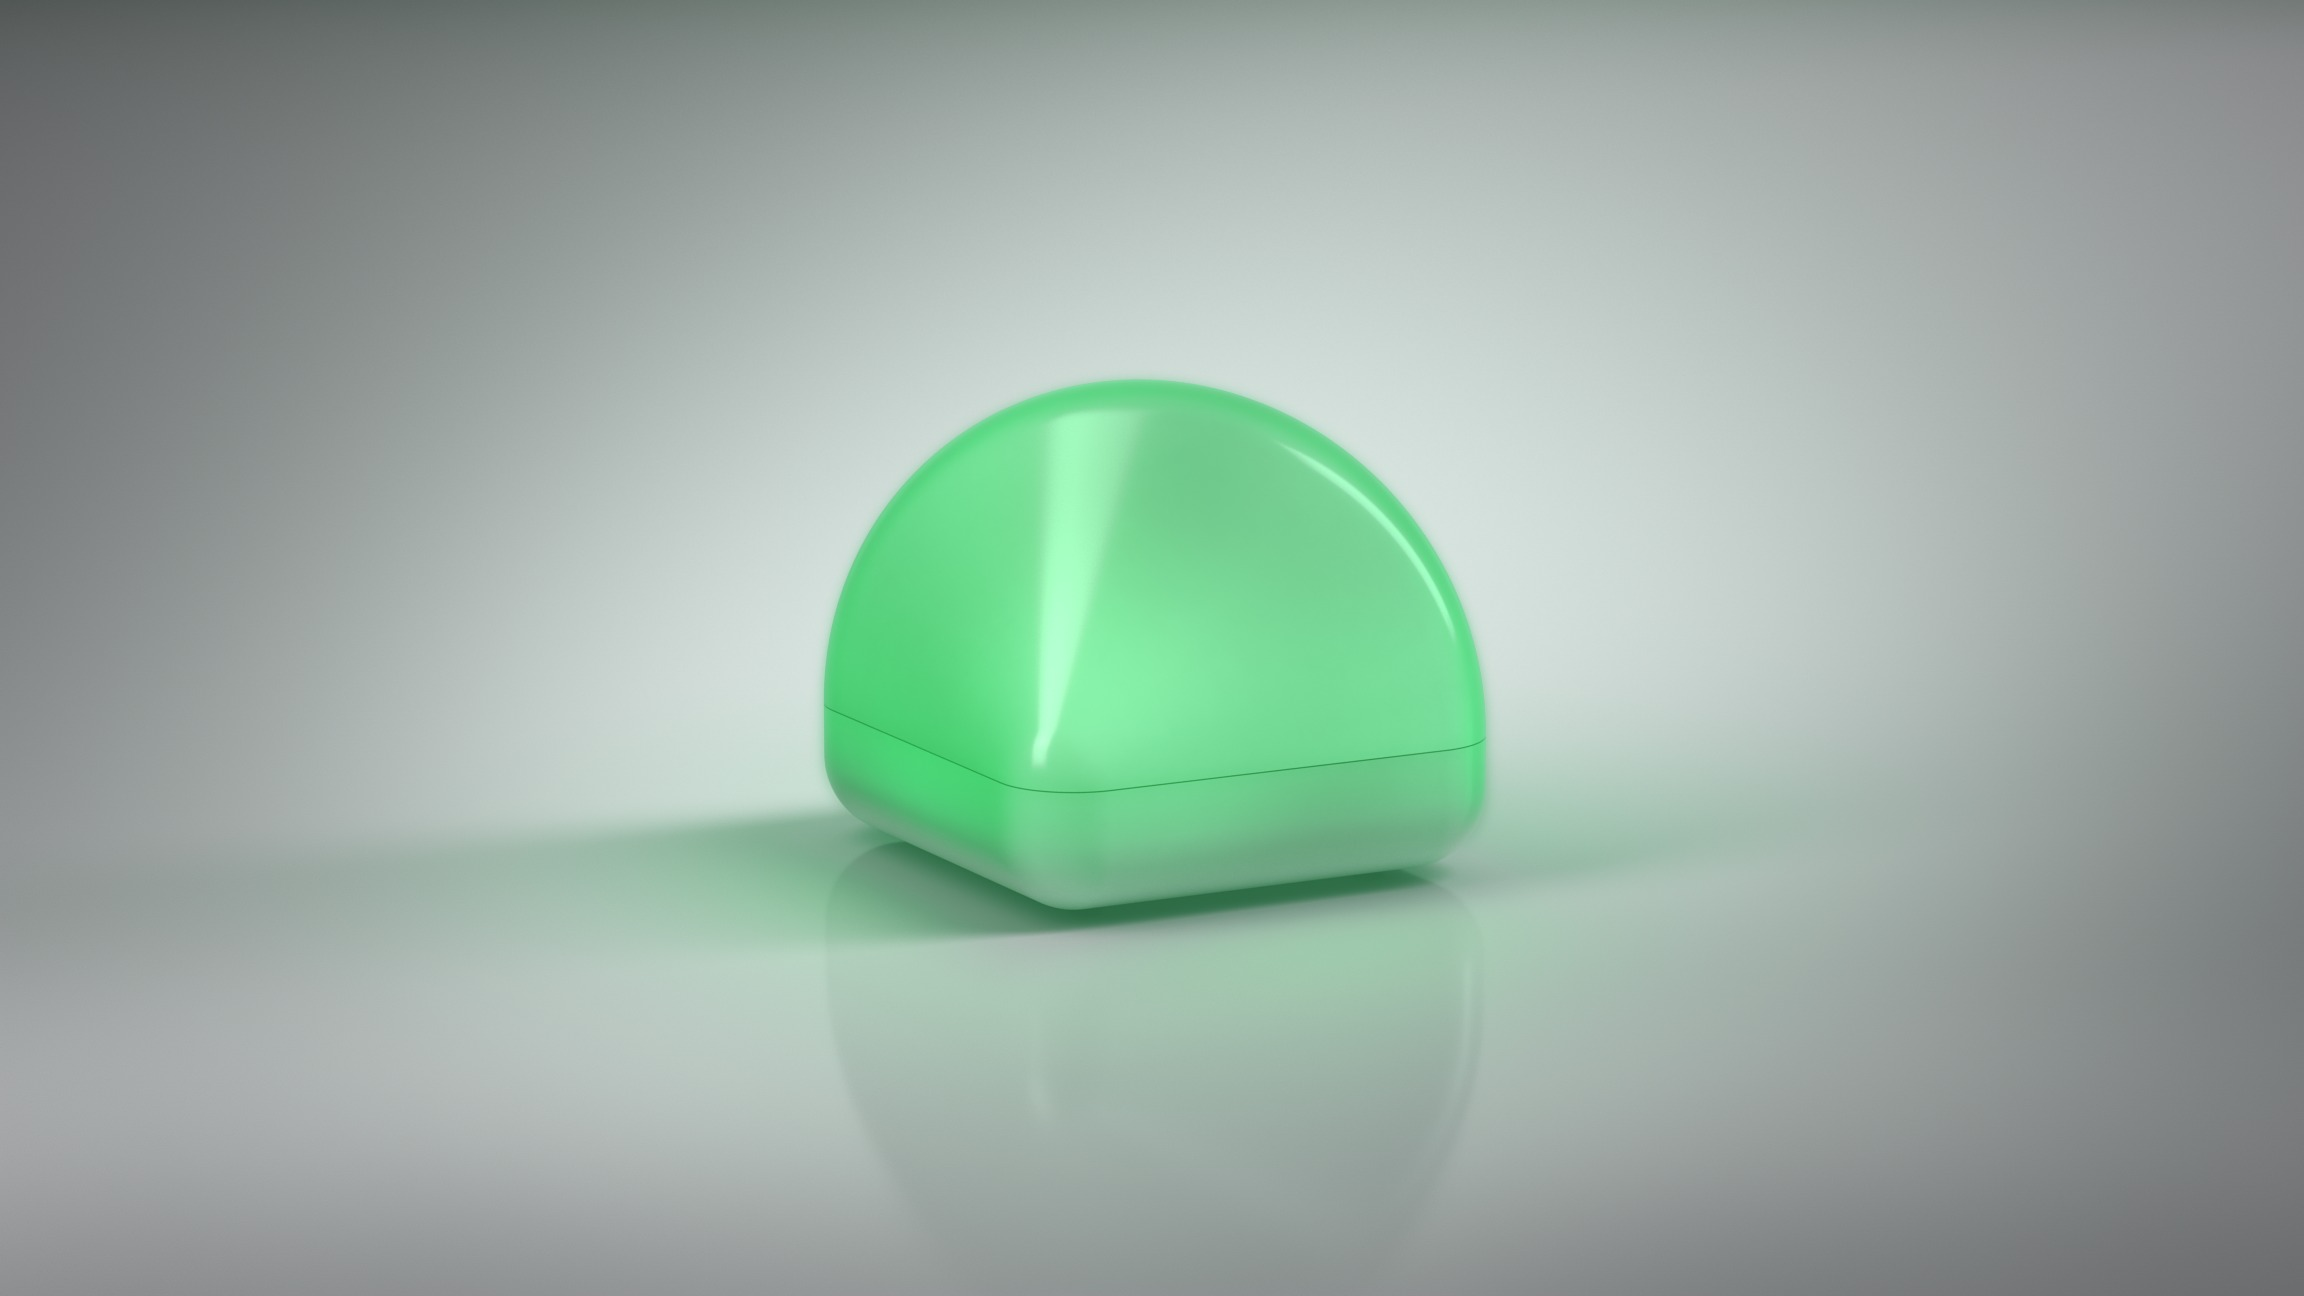 DiCE SMART is an intuitive Made in Italy iOT Hub that controls consumption and manages smart devices